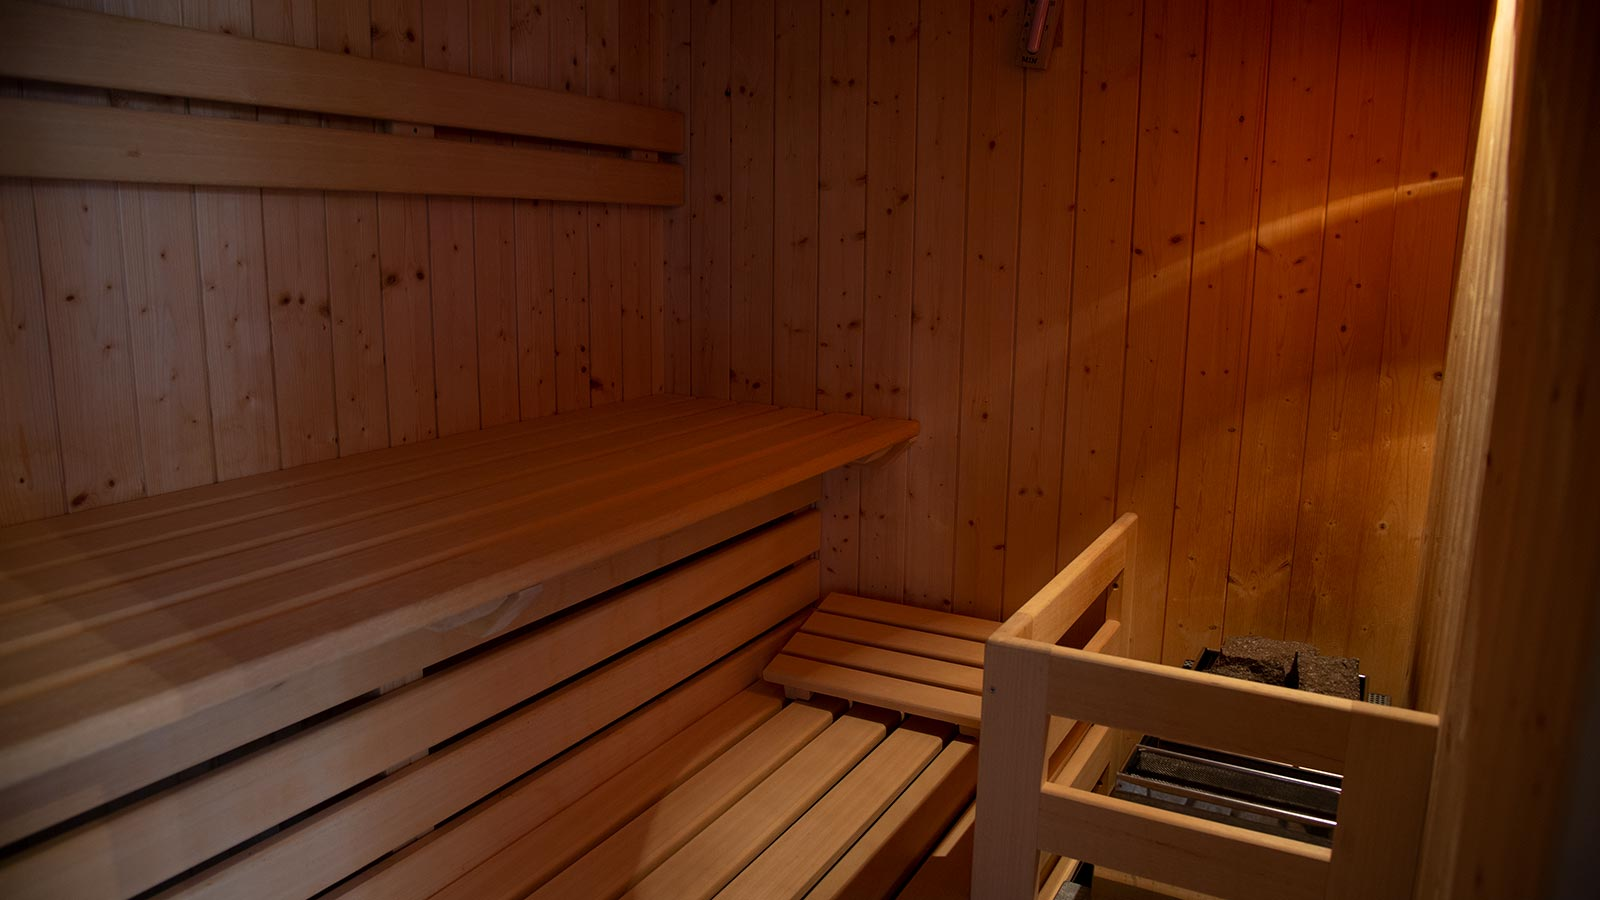 View of the inside of the sauna in the Pensione Wiesenrain